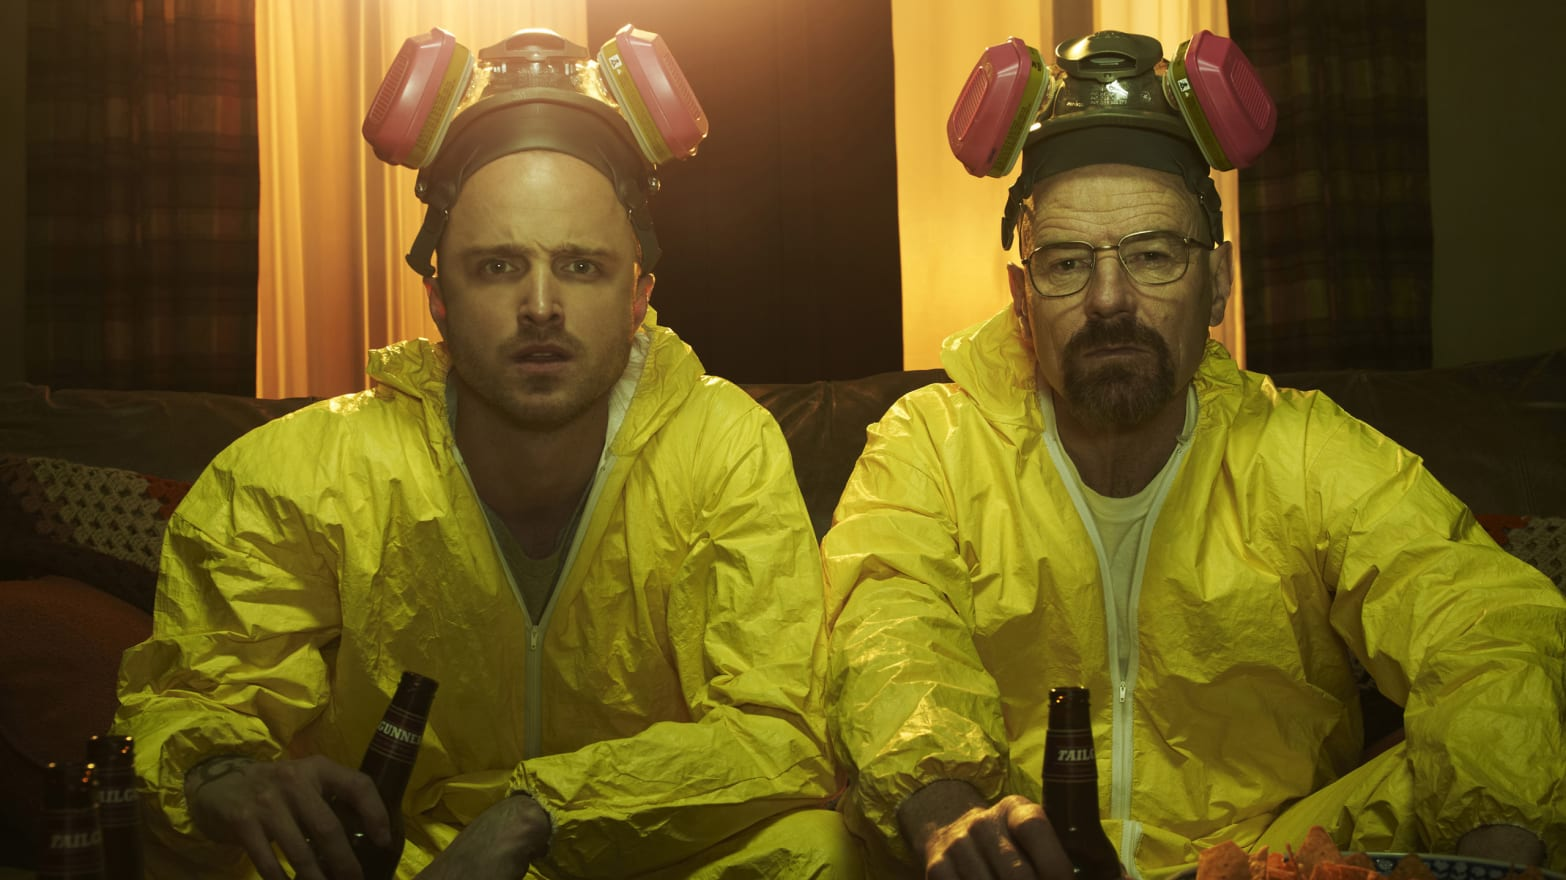 What's Next For The 'Breaking Bad' Cast: Bryan Cranston, Aaron Paul, and More